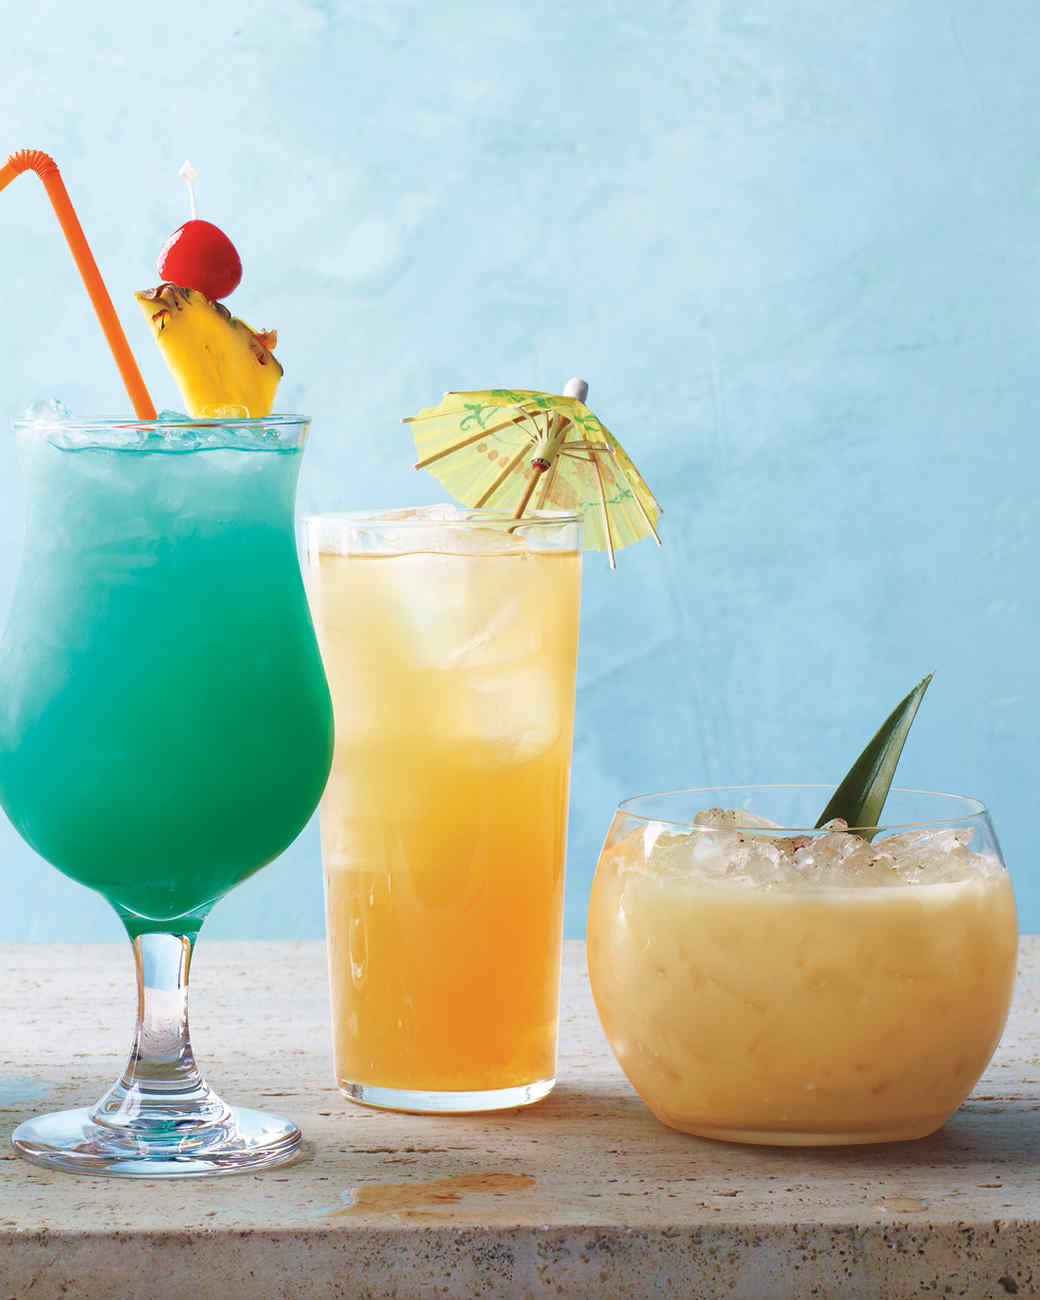 Best Rum Drinks For Summer  Amazing Rum Cocktails That Pack a Serious Punch